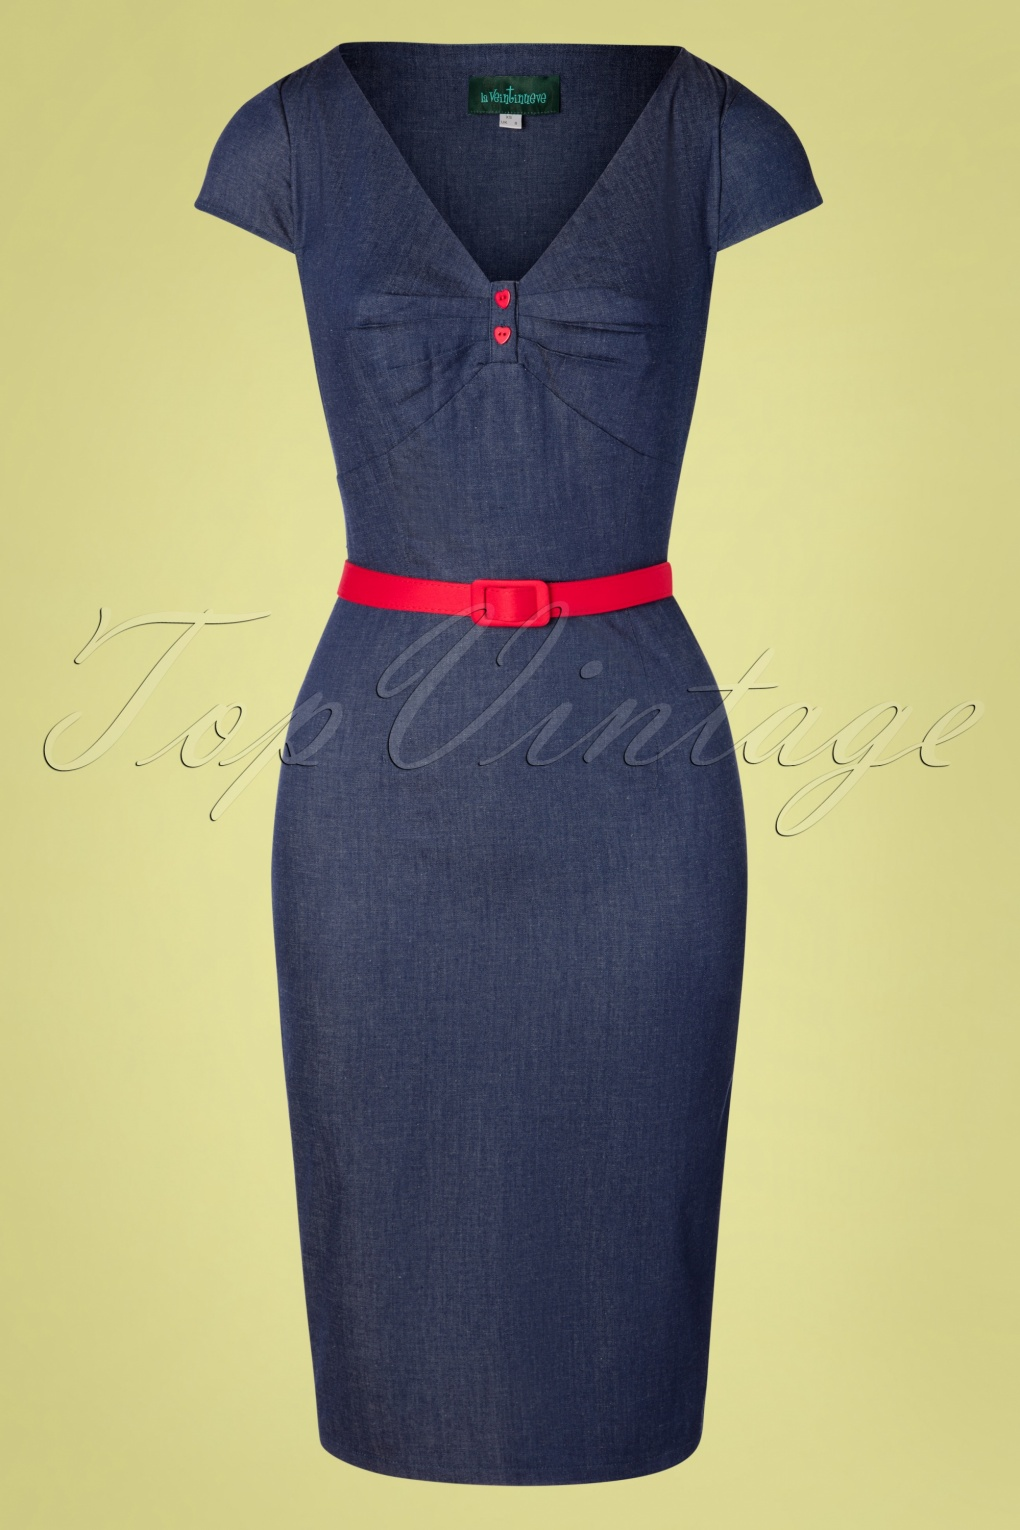 500 Vintage Style Dresses for Sale 50s Irene Pencil Dress in Denim Blue �77.66 AT vintagedancer.com